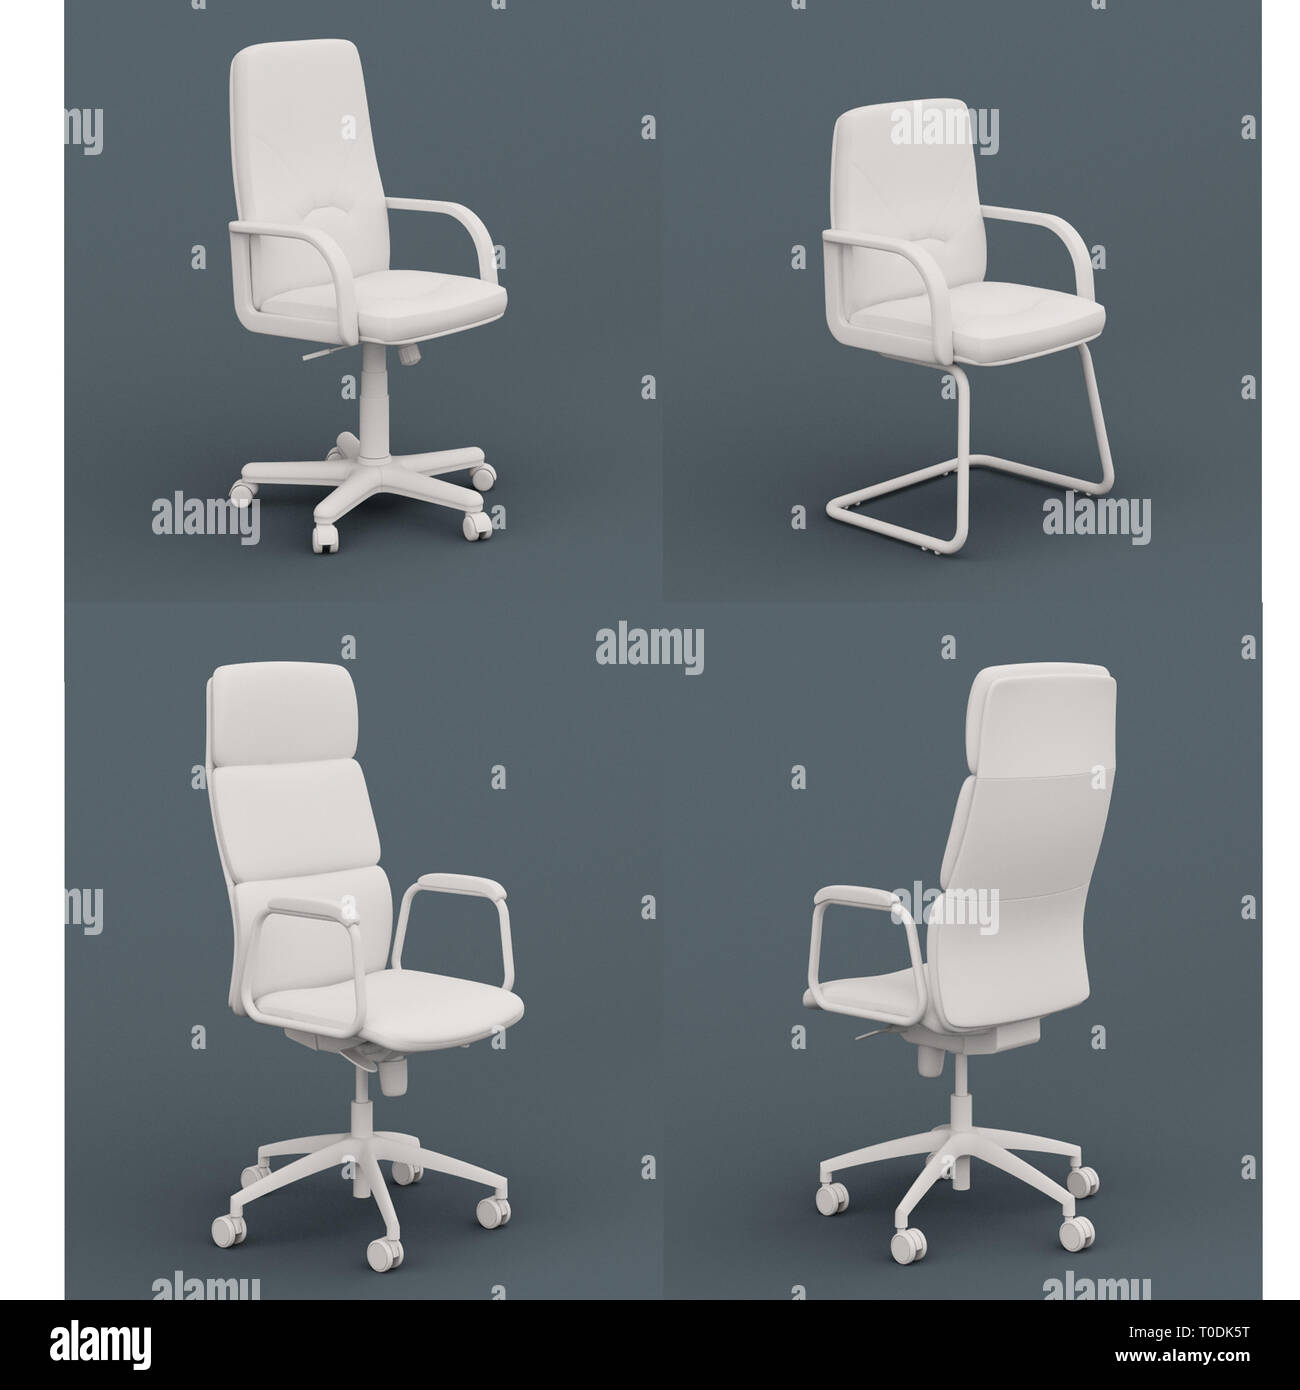 A Set Of White Home Office Desk Chairs Stock Photo Alamy